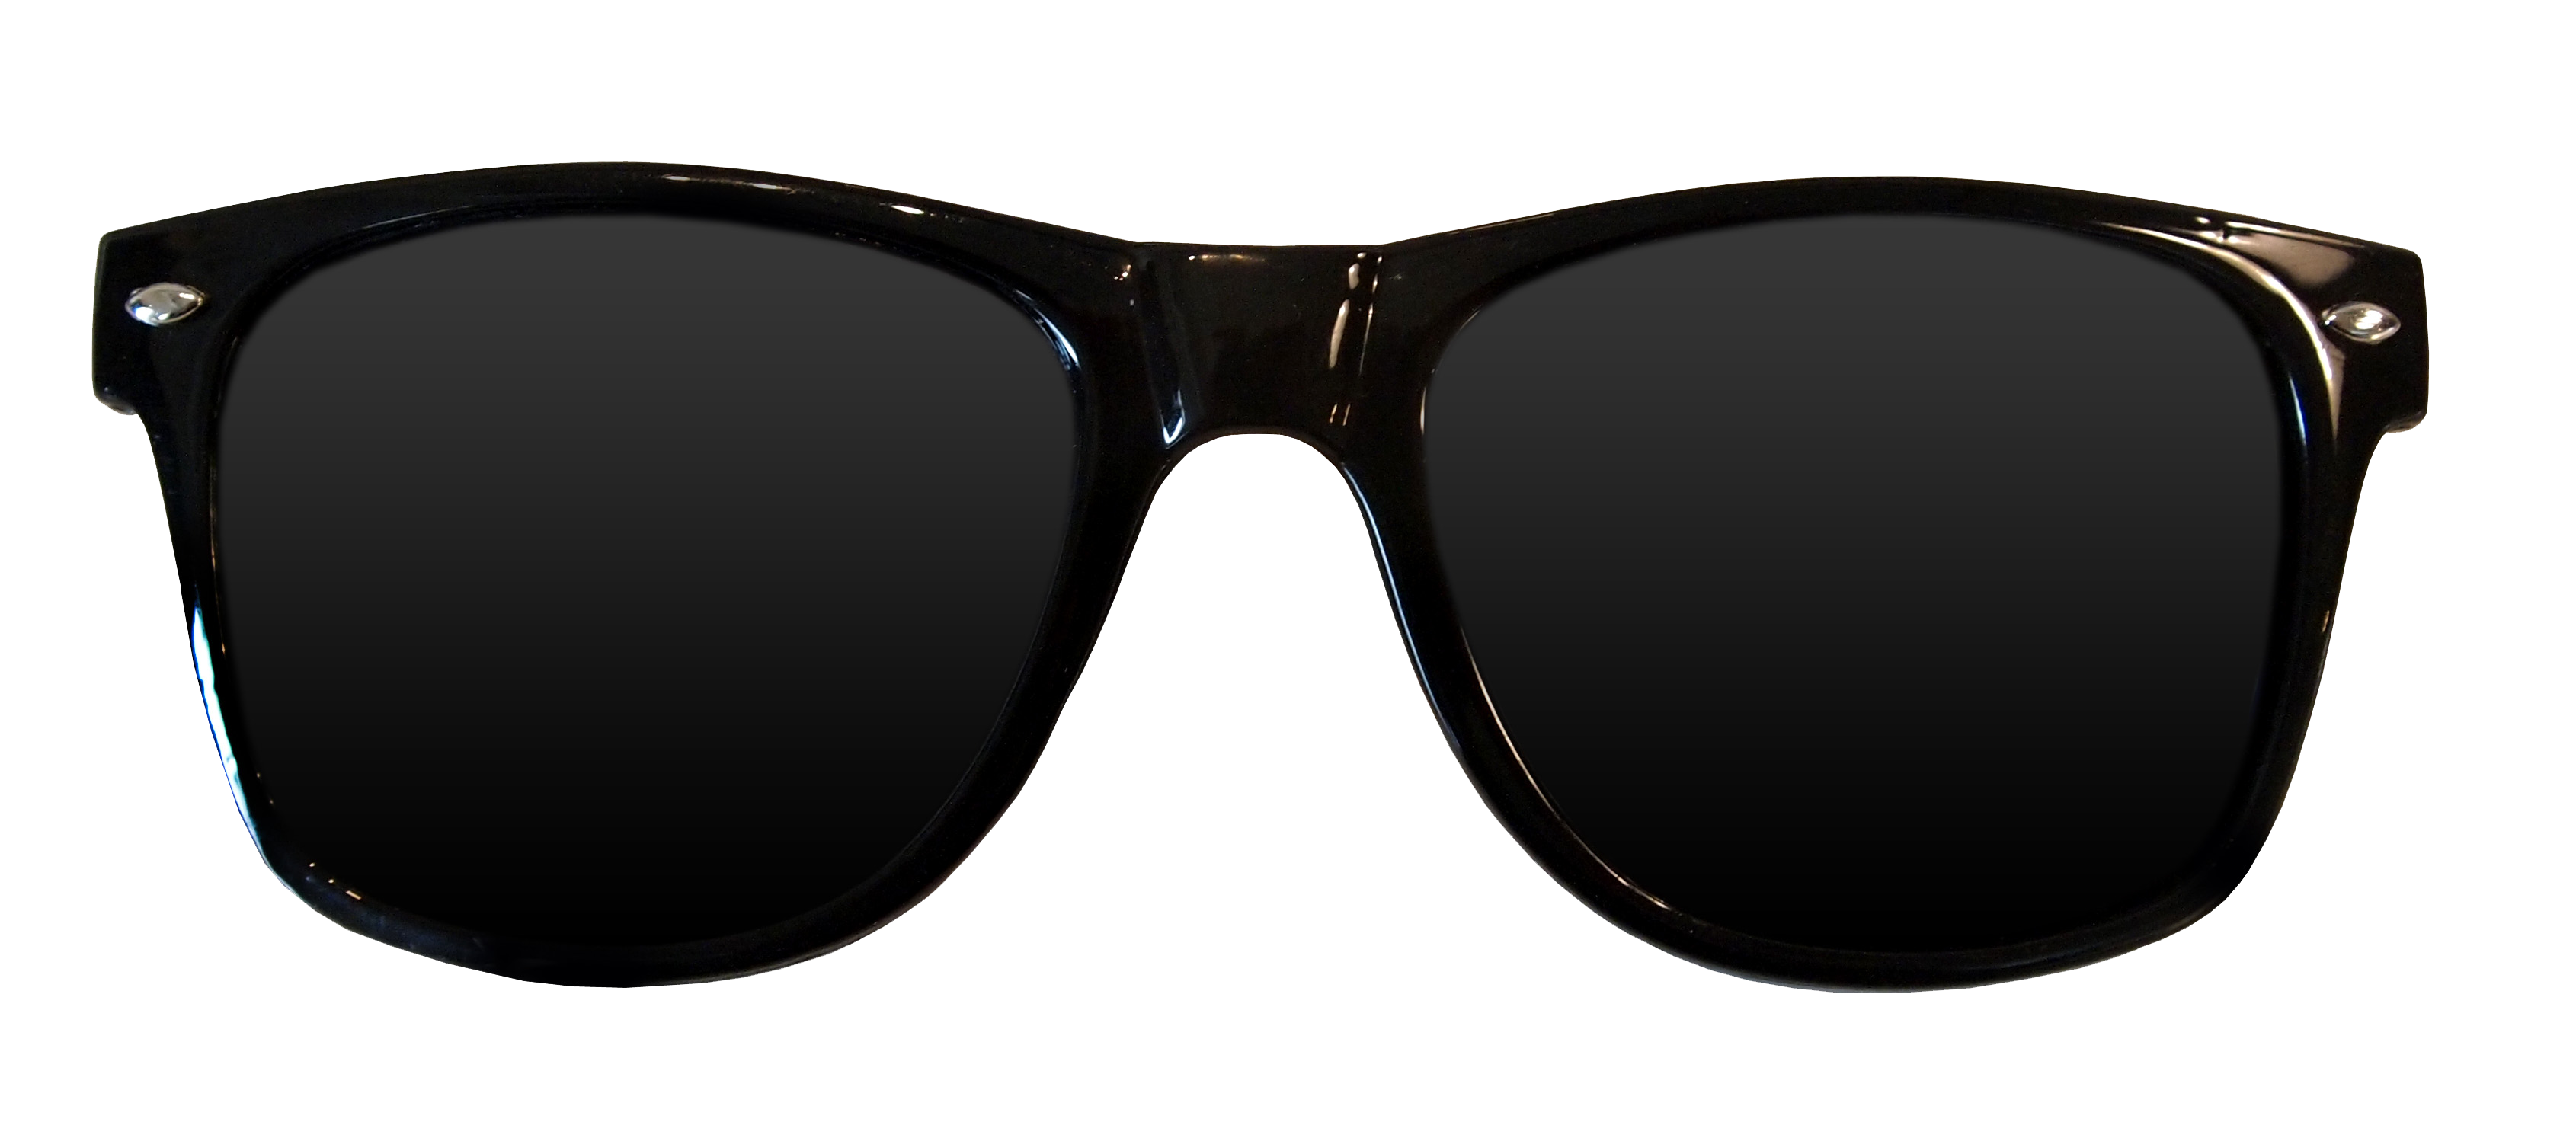 aviator sunglasses png